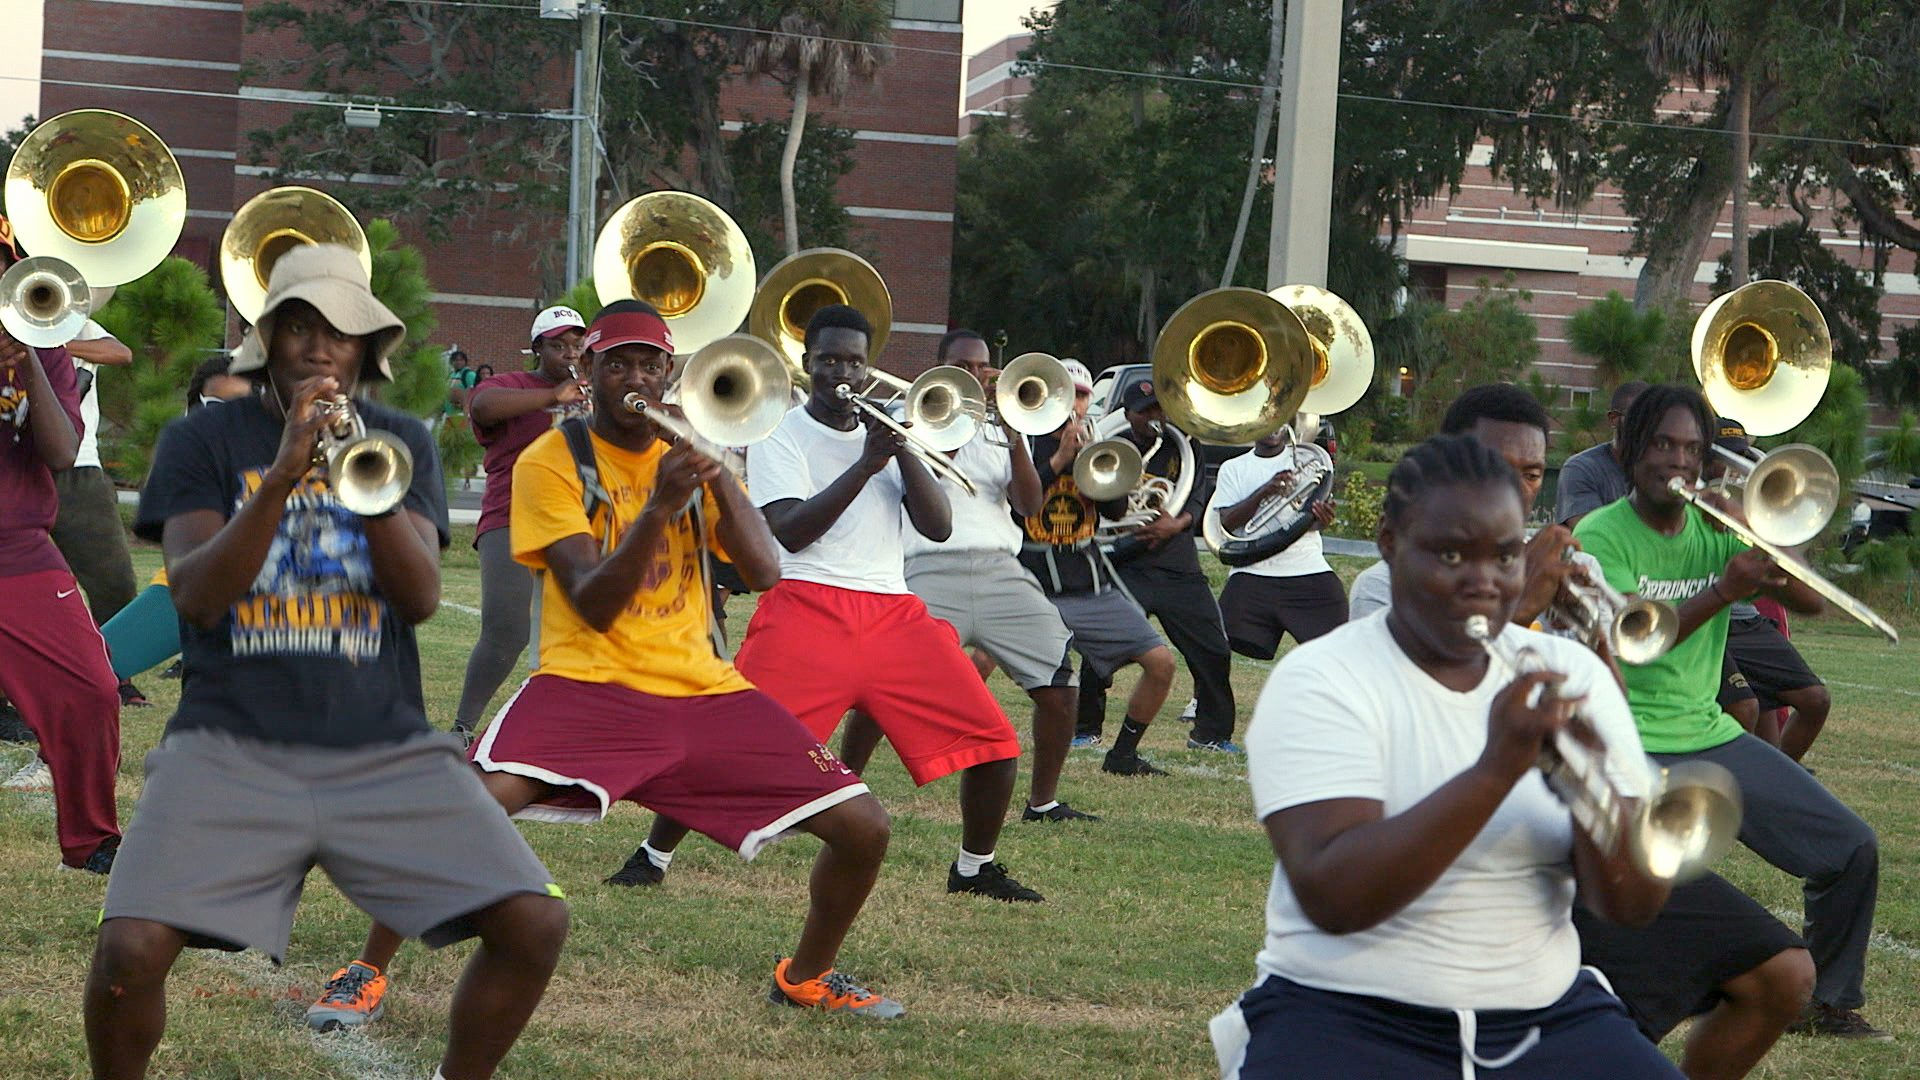 Band Practice, Field, Bethune-Cookman University, BCU, Marching Wildcats, Marching Orders, Stage 13 Original, stage13network